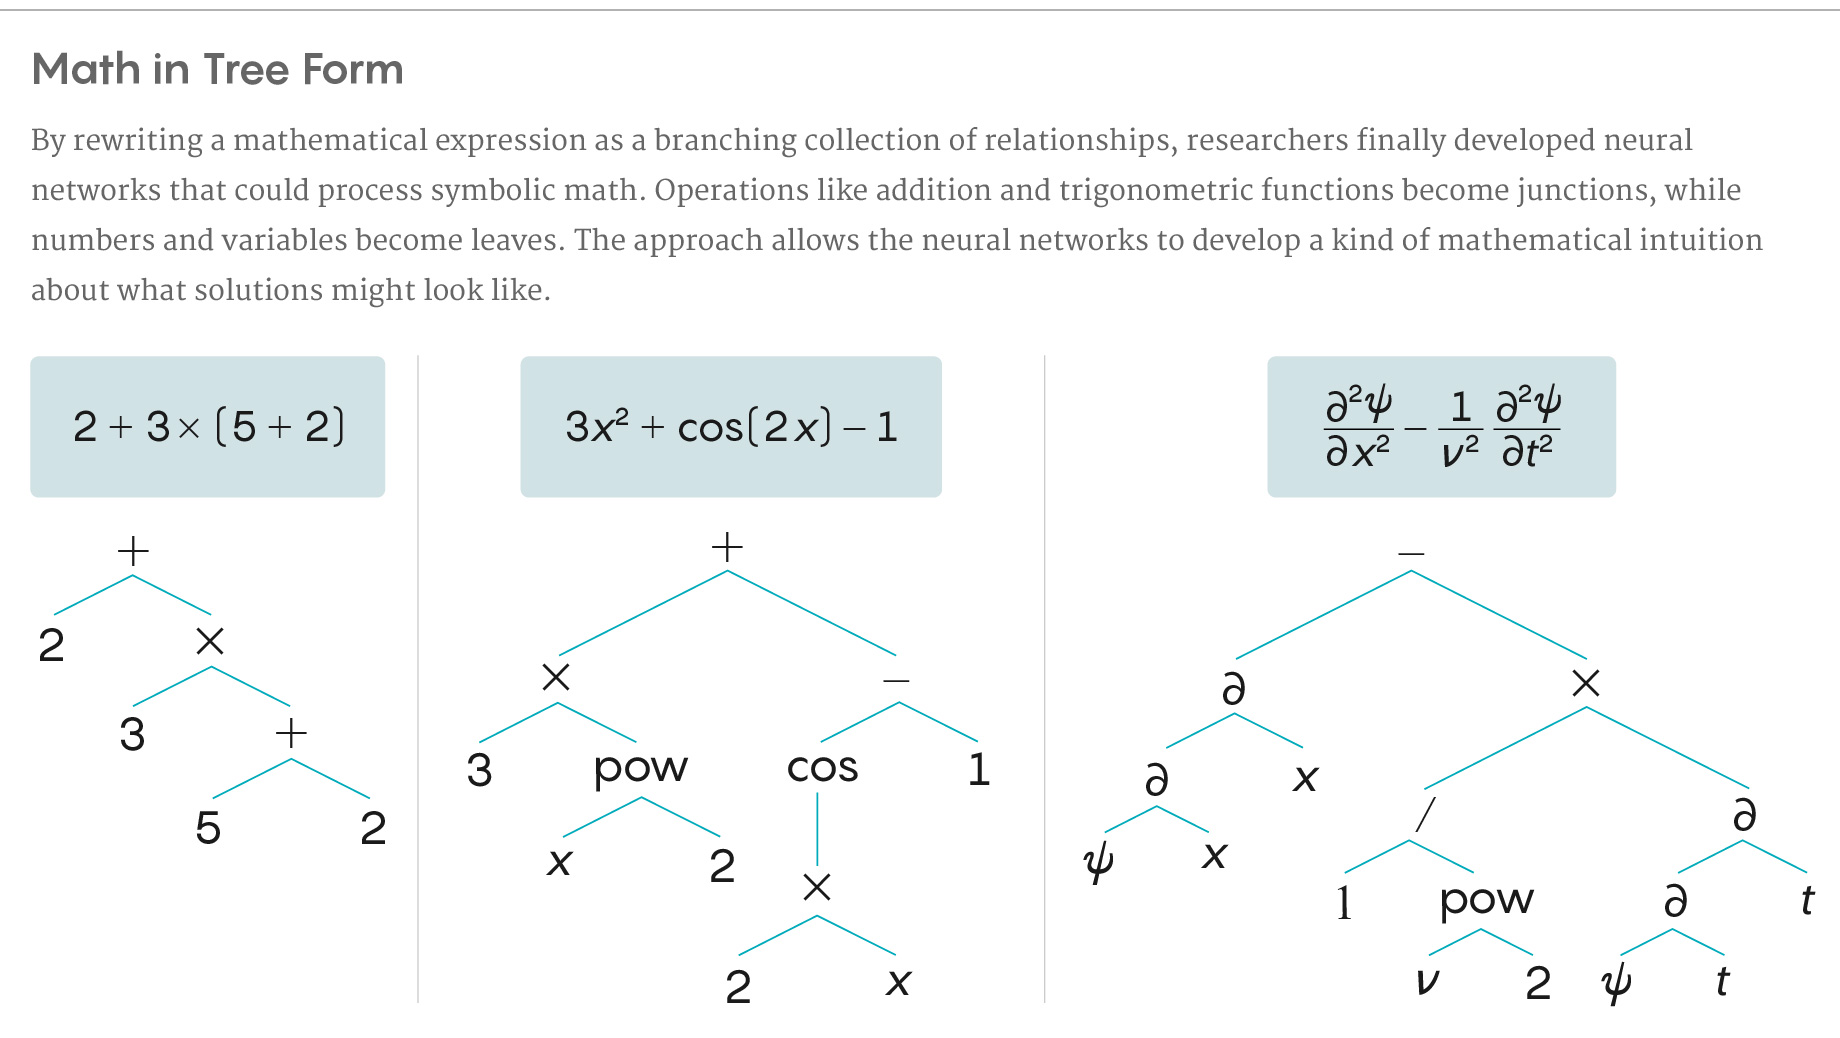 Brief illustration of how a new program translates symbolic math into a tree-like structure